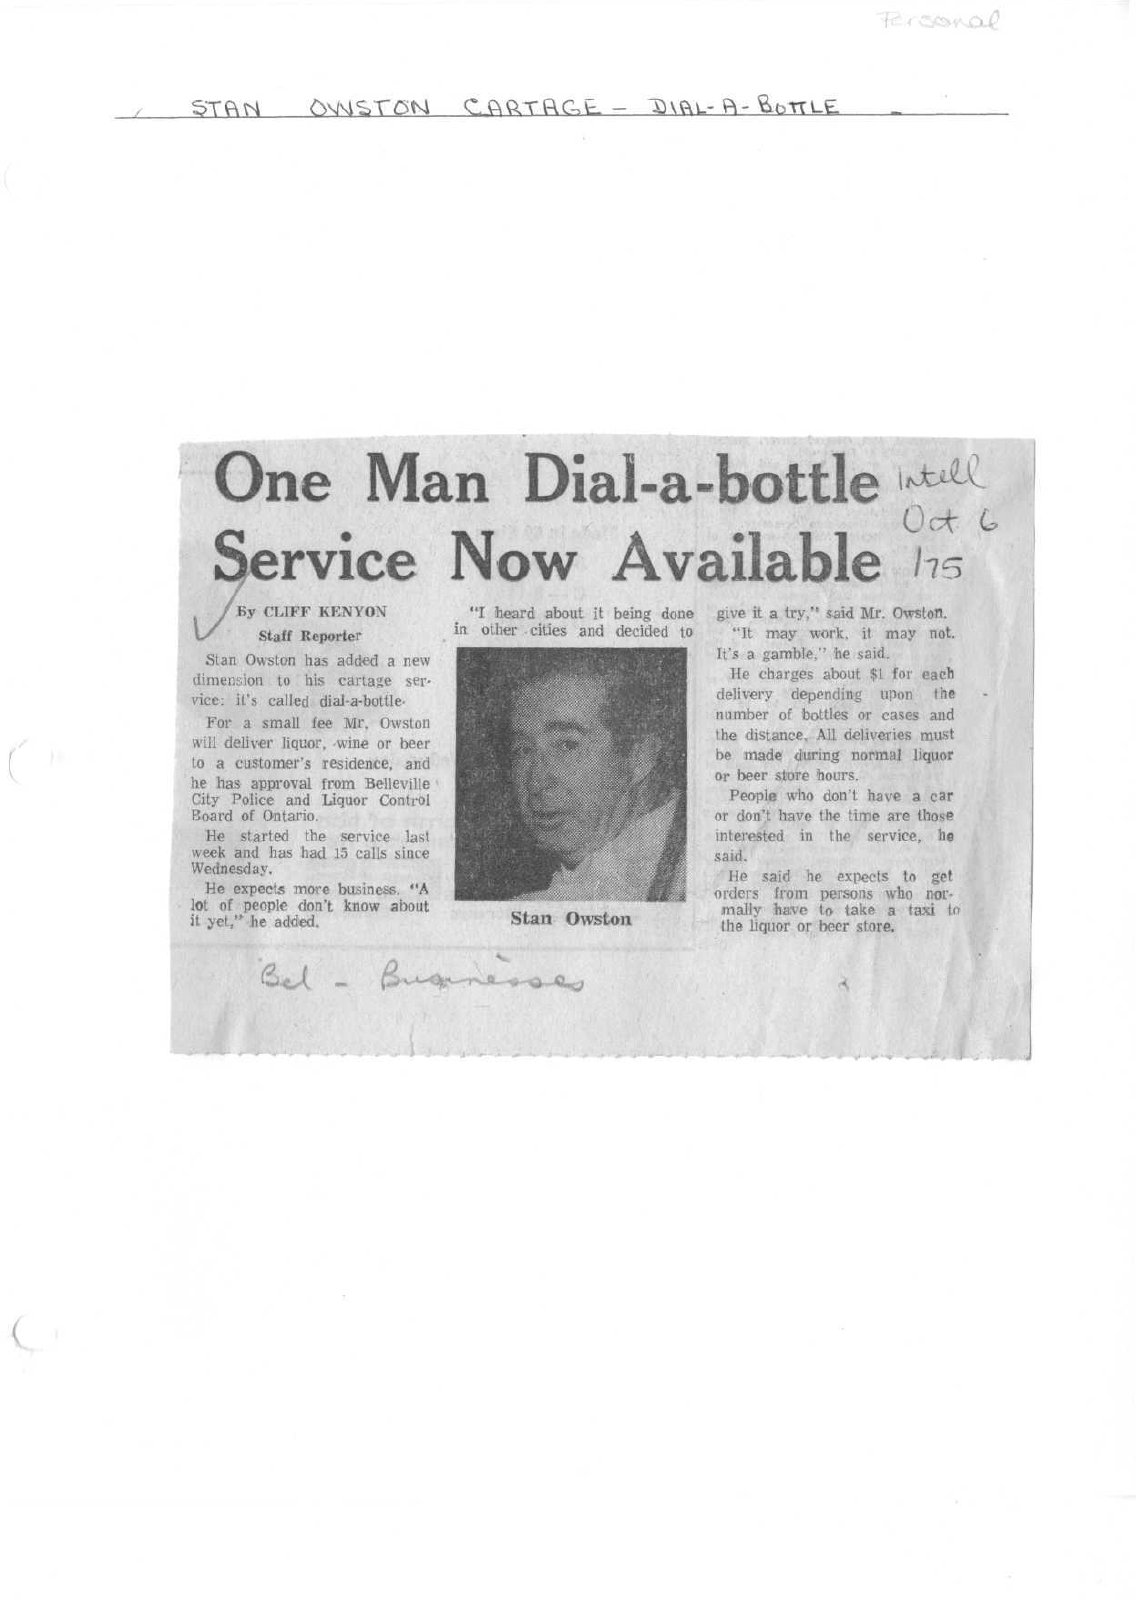 One Man Dial-a-bottle Service Now Available